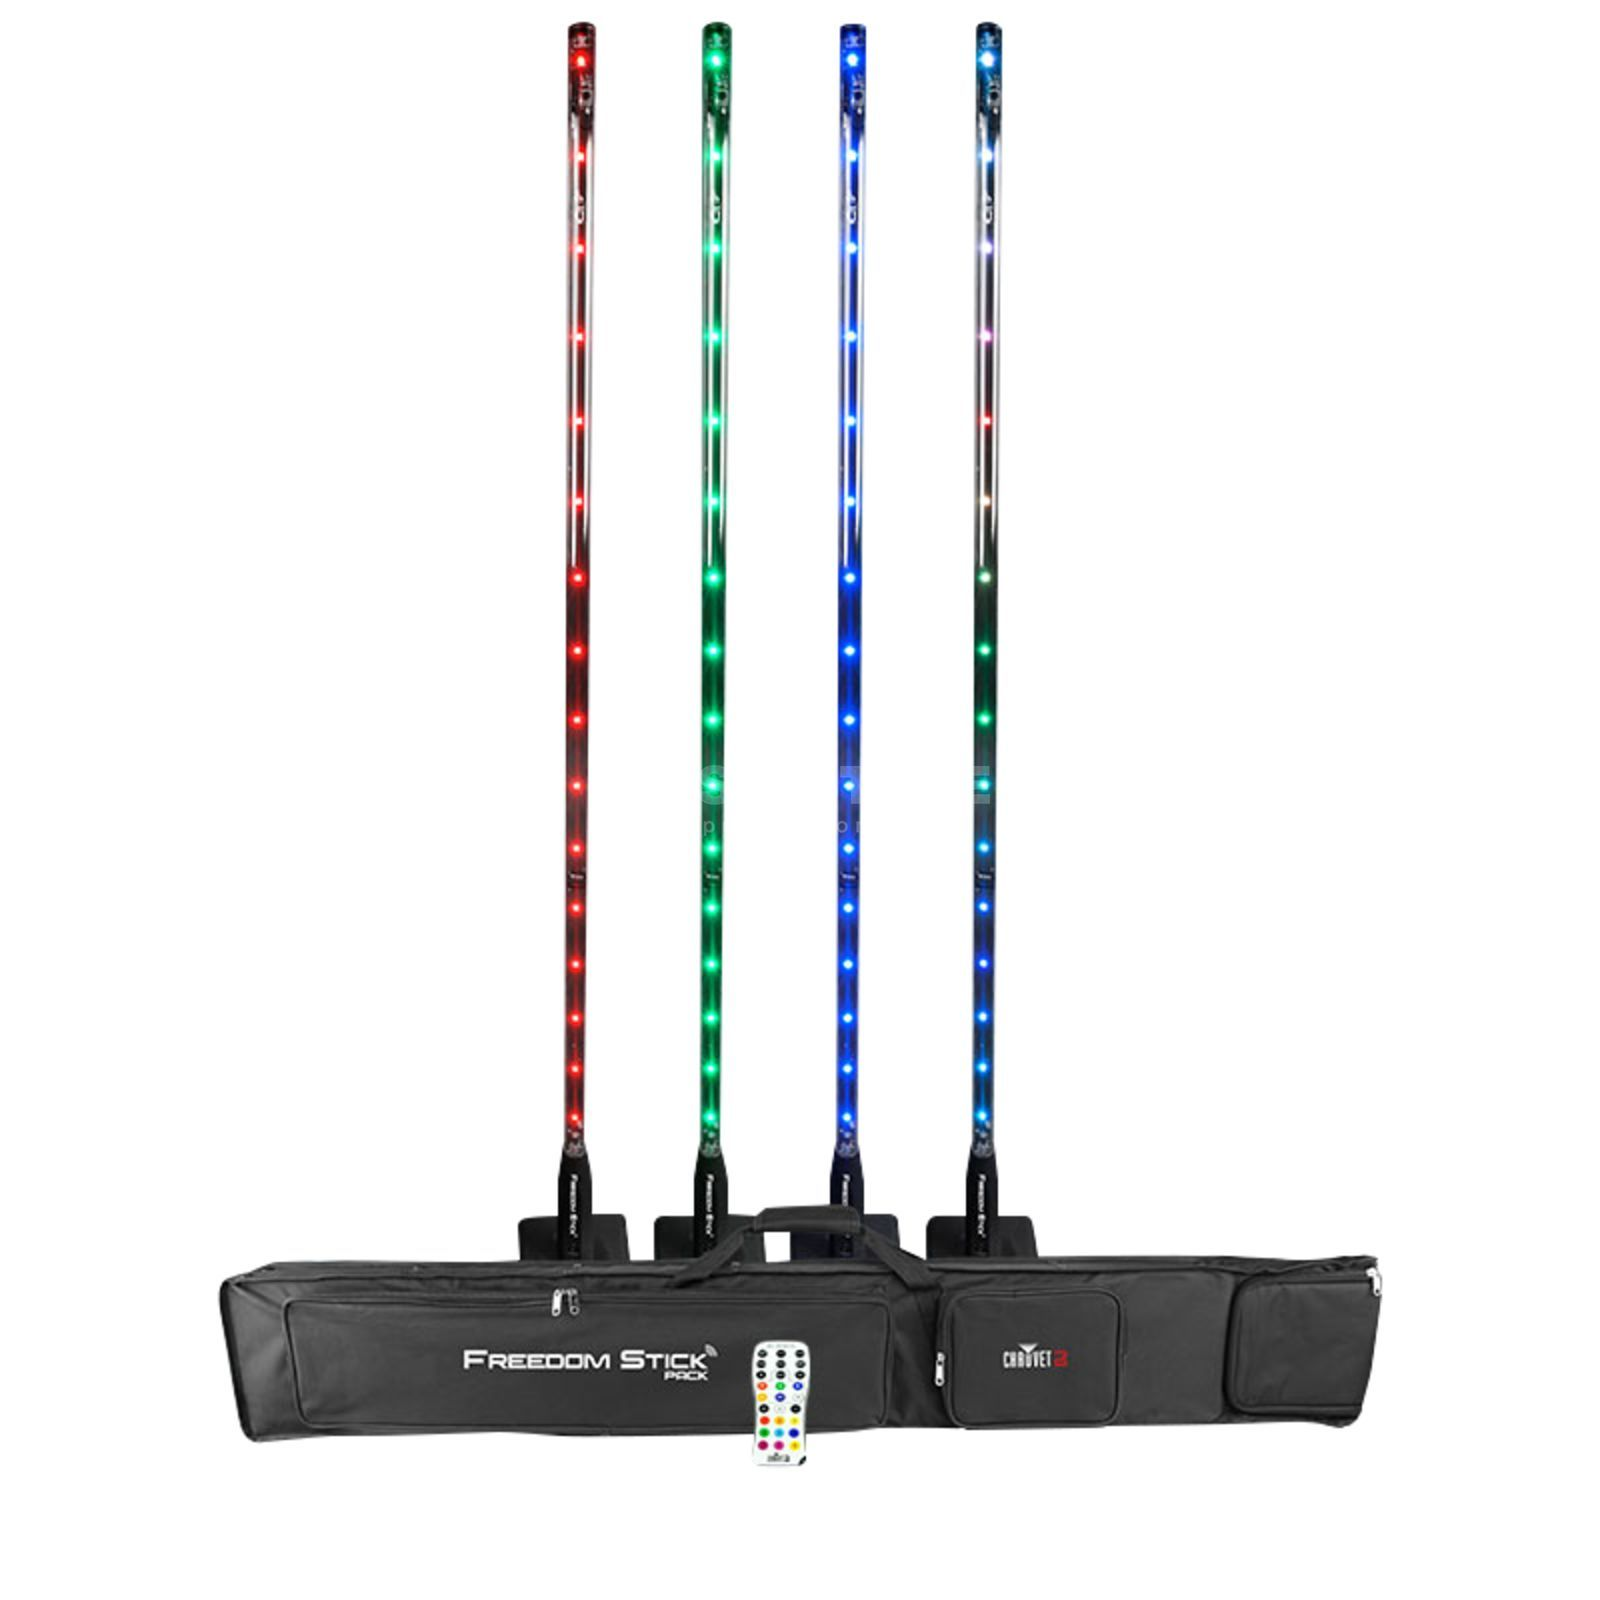 Chauvet DJ Freedom Stick Pack incl. Bag Charger, IRC-6 Product Image